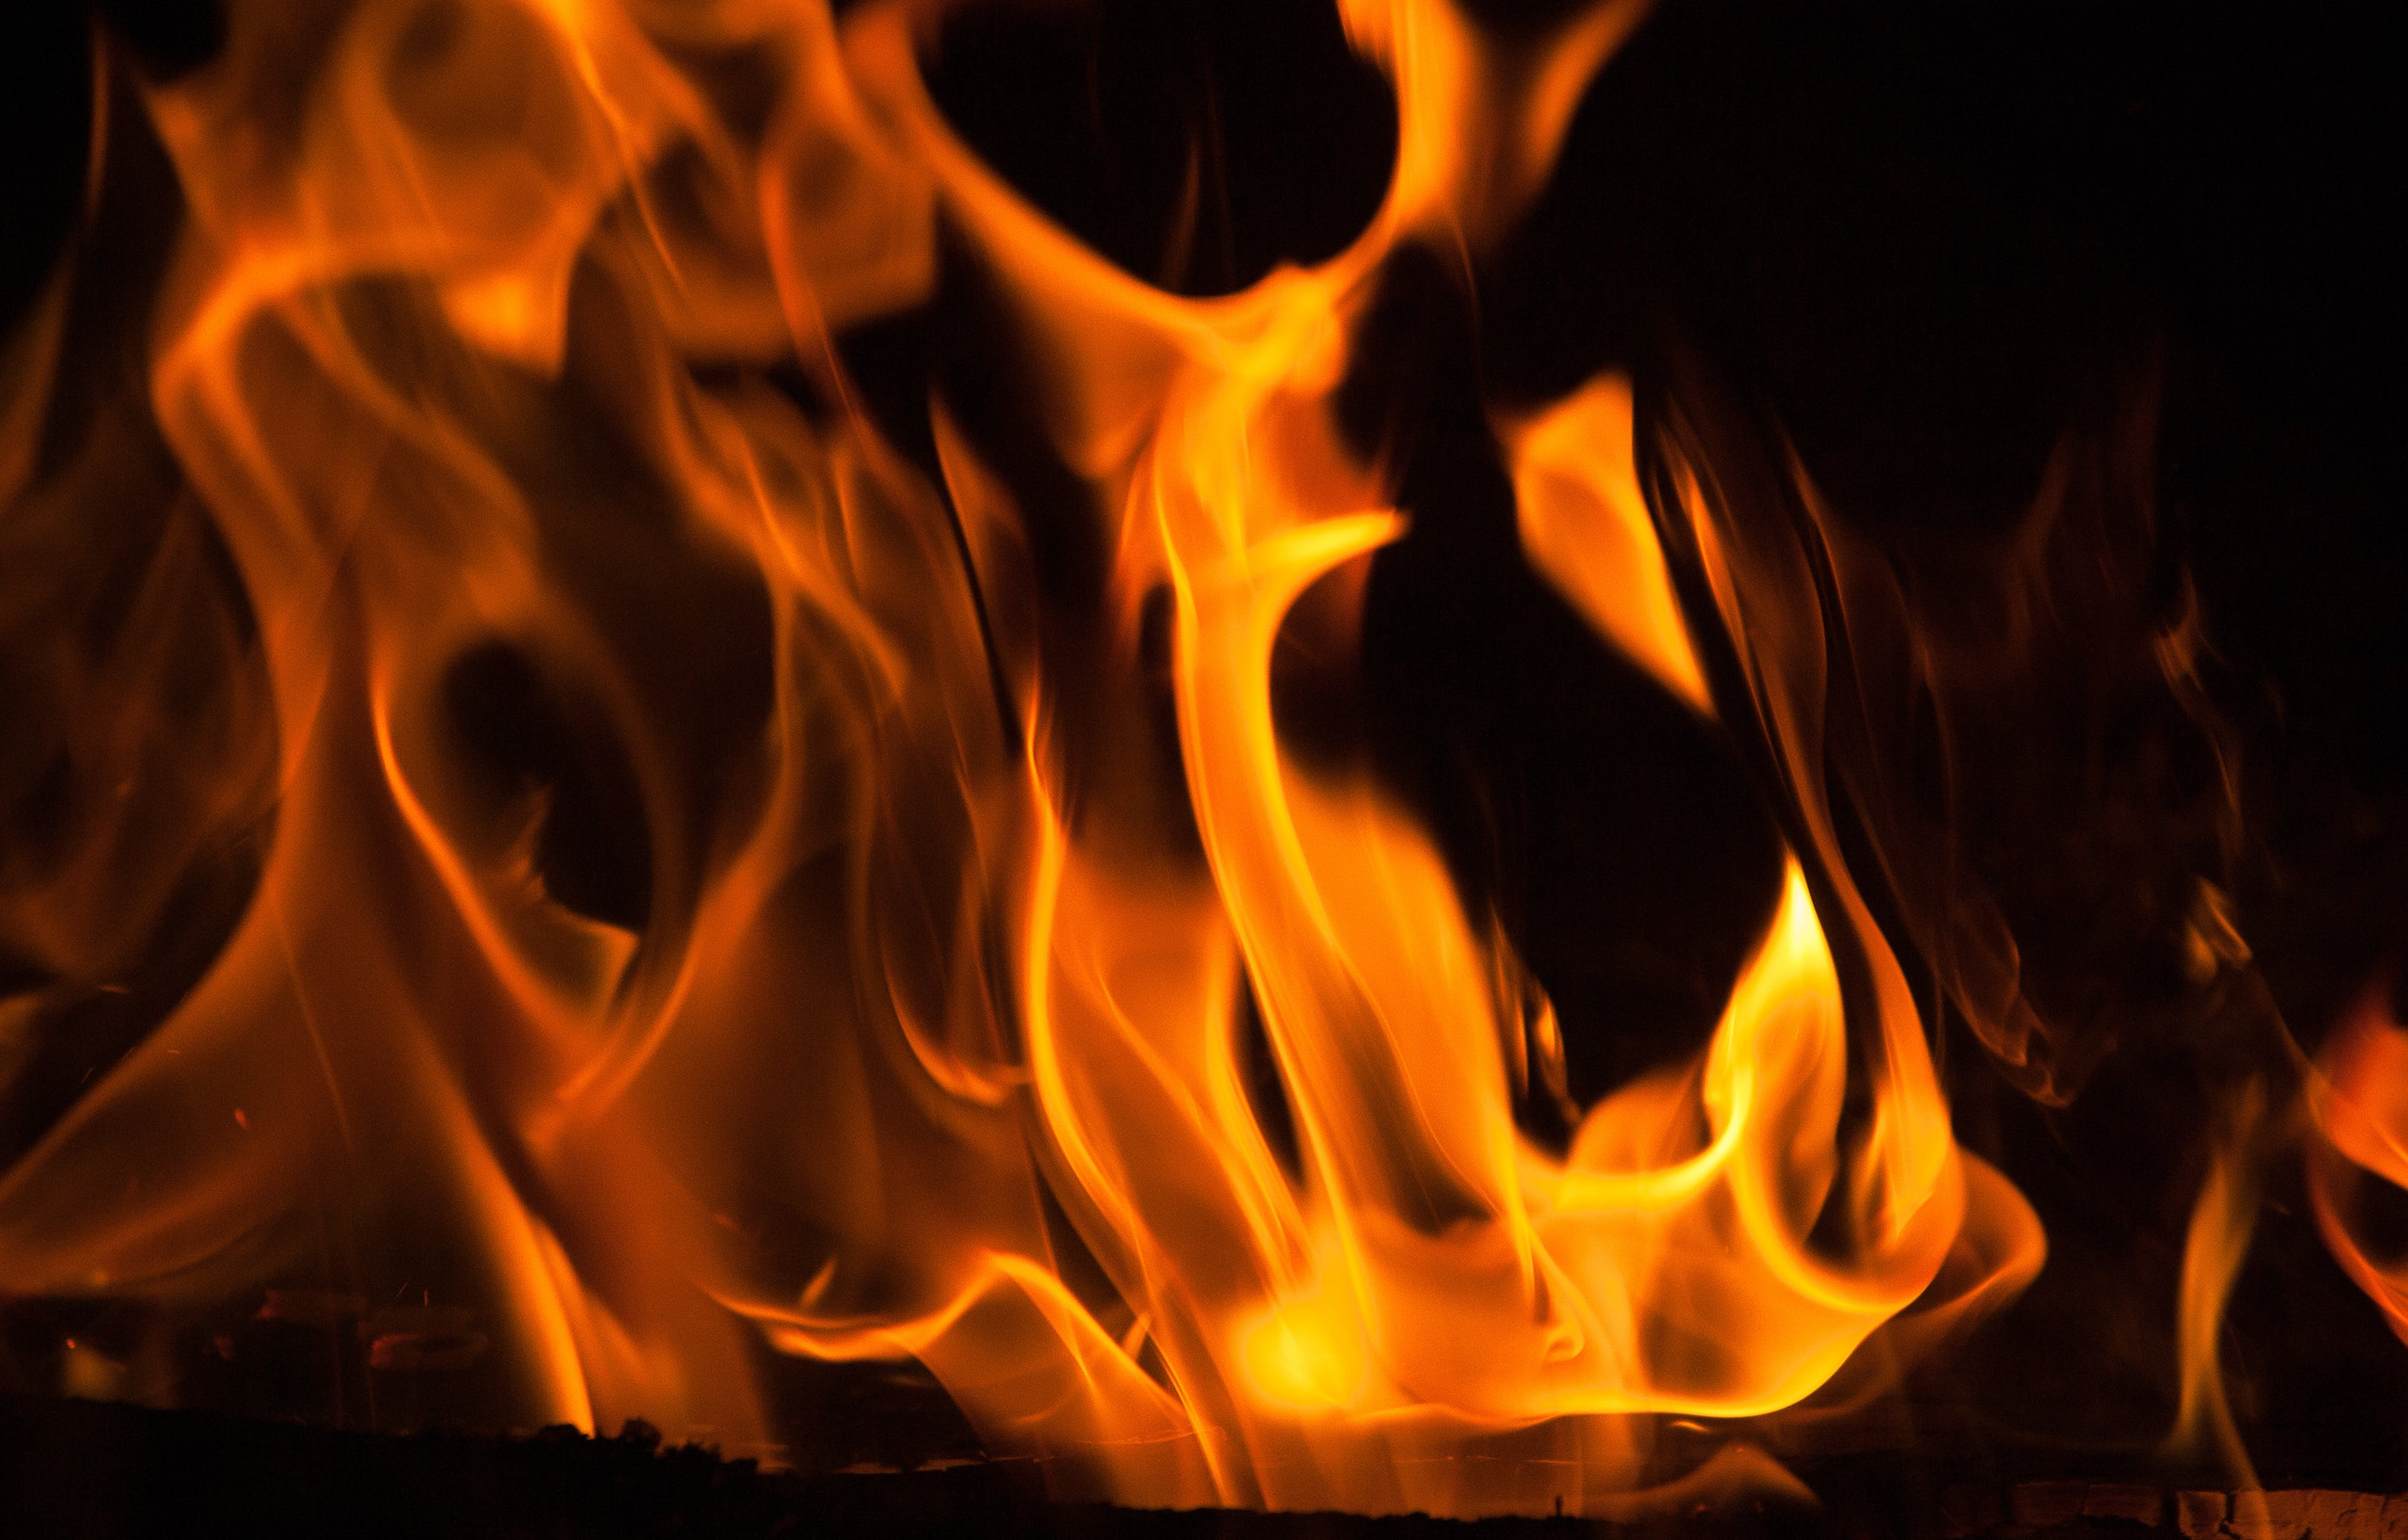 Free stock photo of fire, fireplace, flames, heat